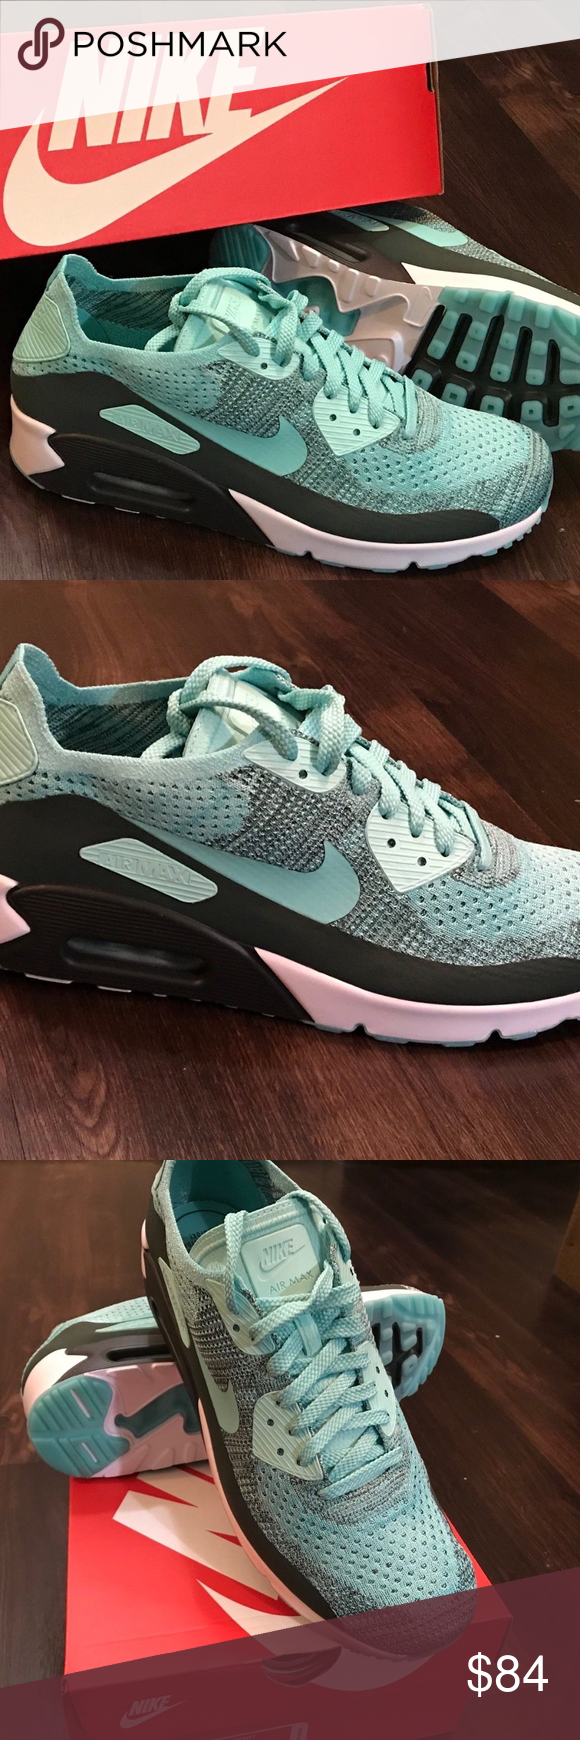 nike air max 90 flyknit hyper turquoise